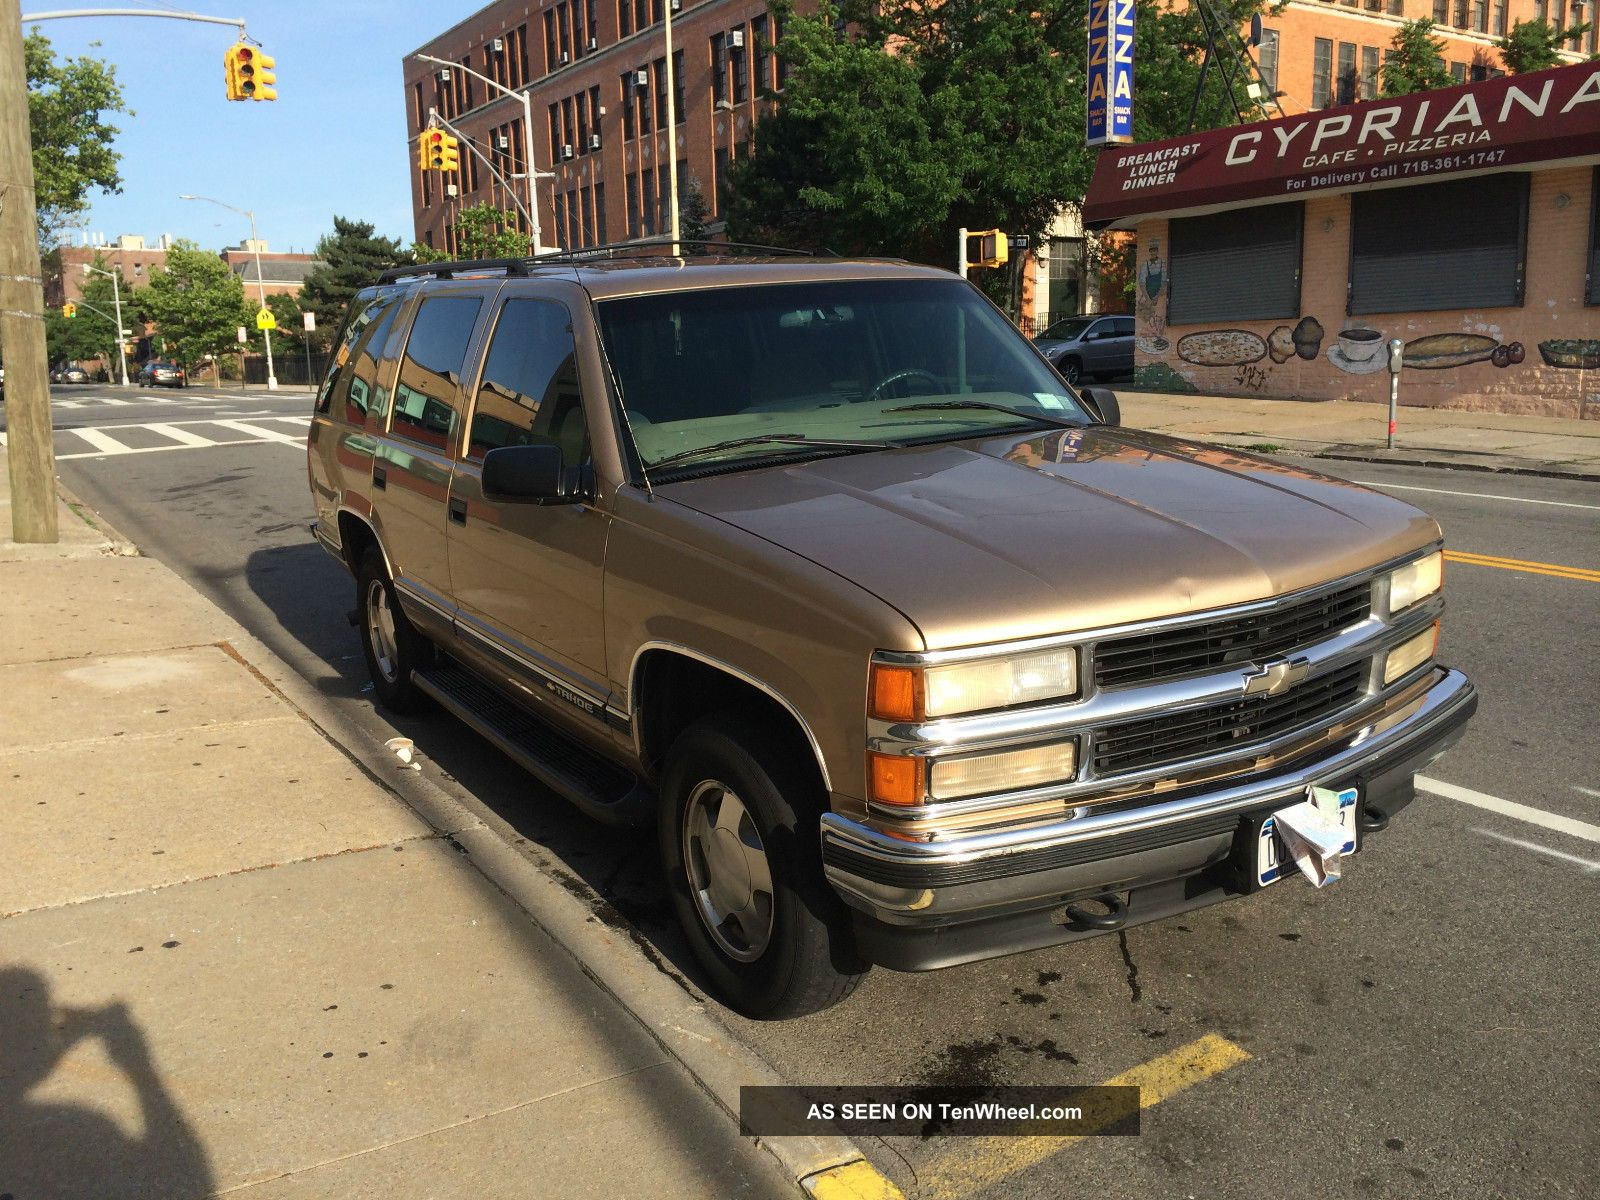 1999 Chevy Tahoe With Some Police Package Features